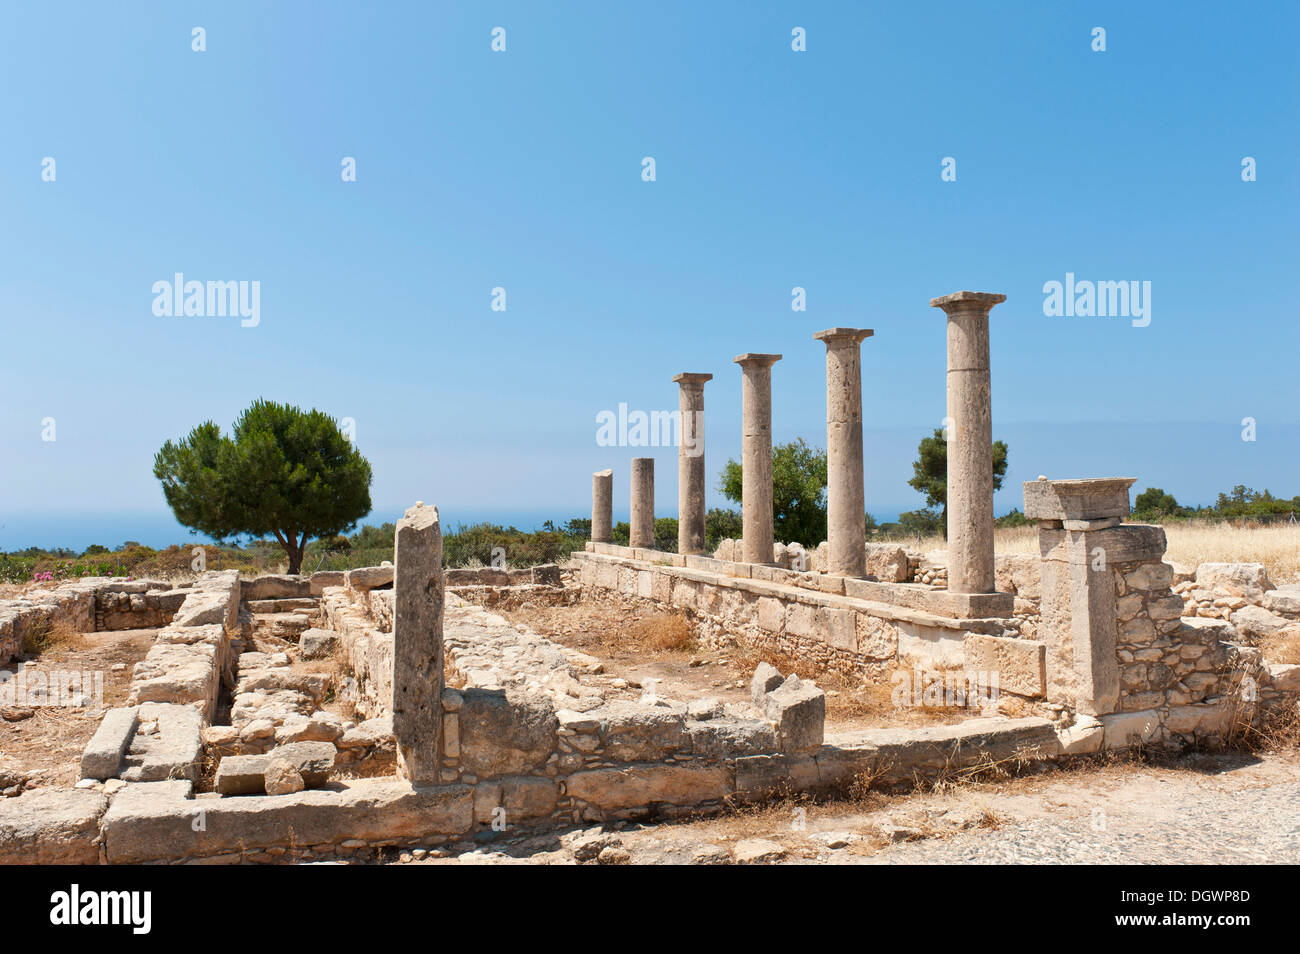 Archaeological excavation site with columns and foundation walls, Temple of Apollo Hylates, Apollo-Hylates-Heiligtum, Stock Photo